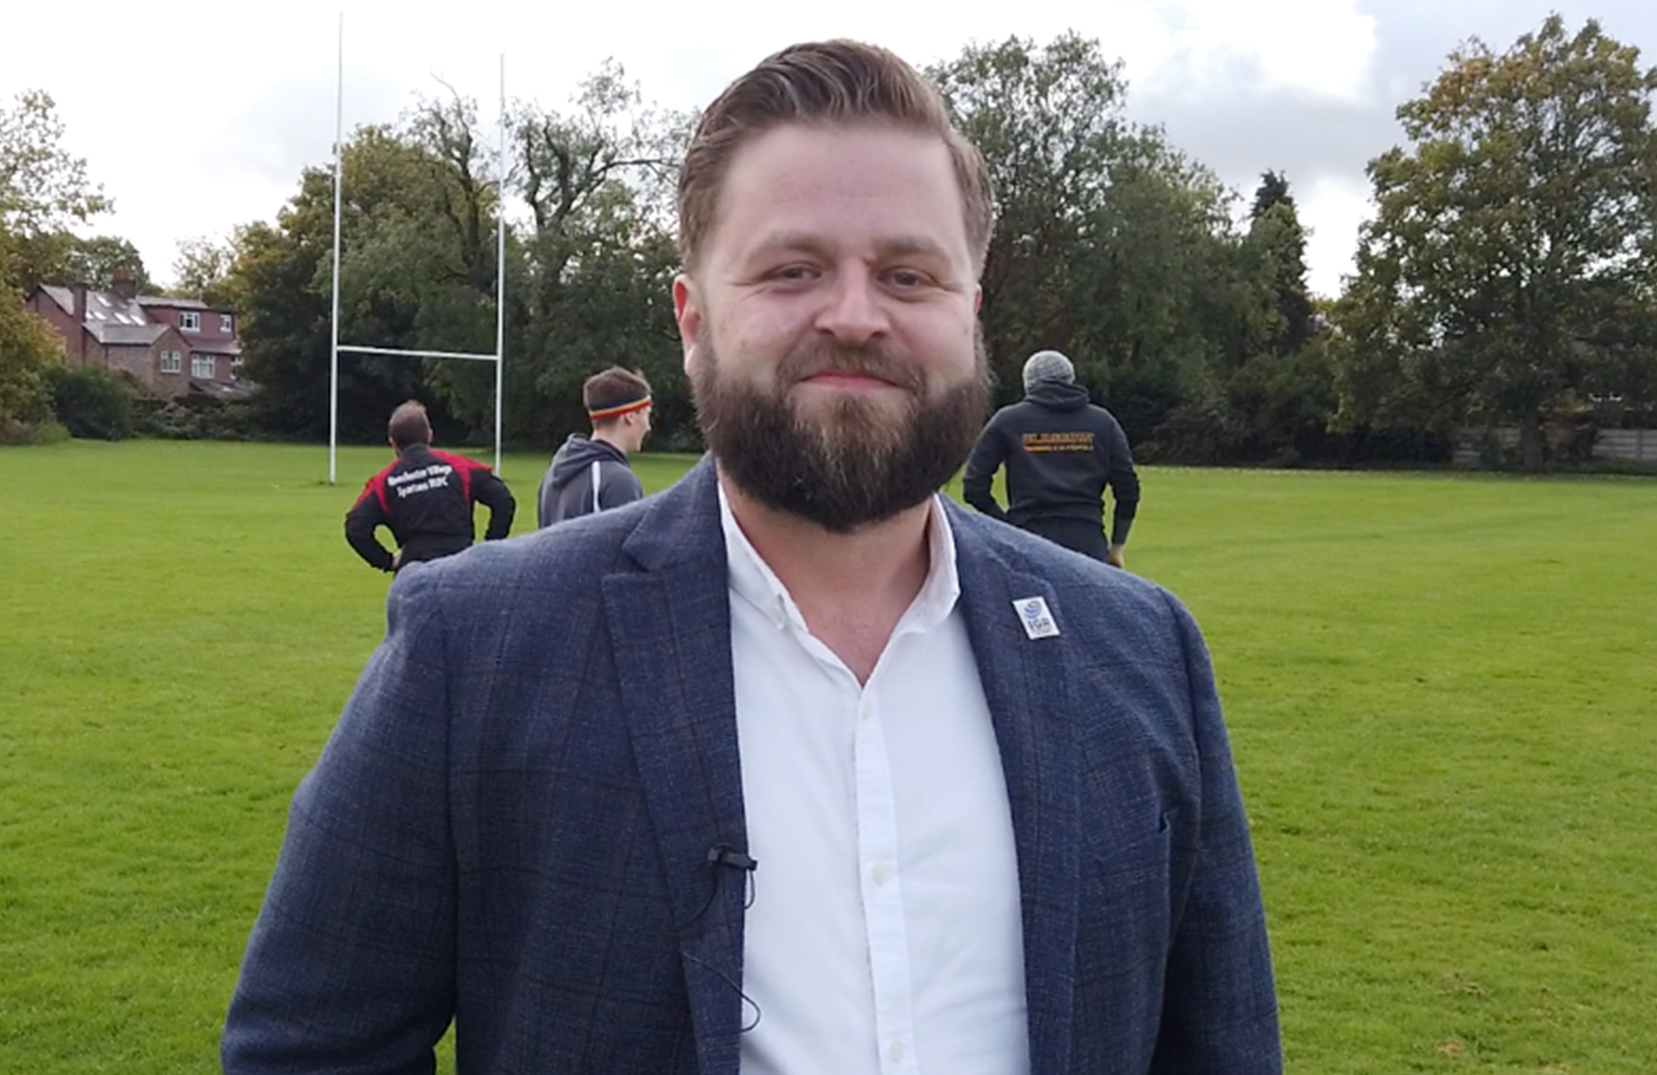 Karl-Ainscough-Gates - Manchester Village Spartans - IGR - Inclusive Rugby - Gay Rugby